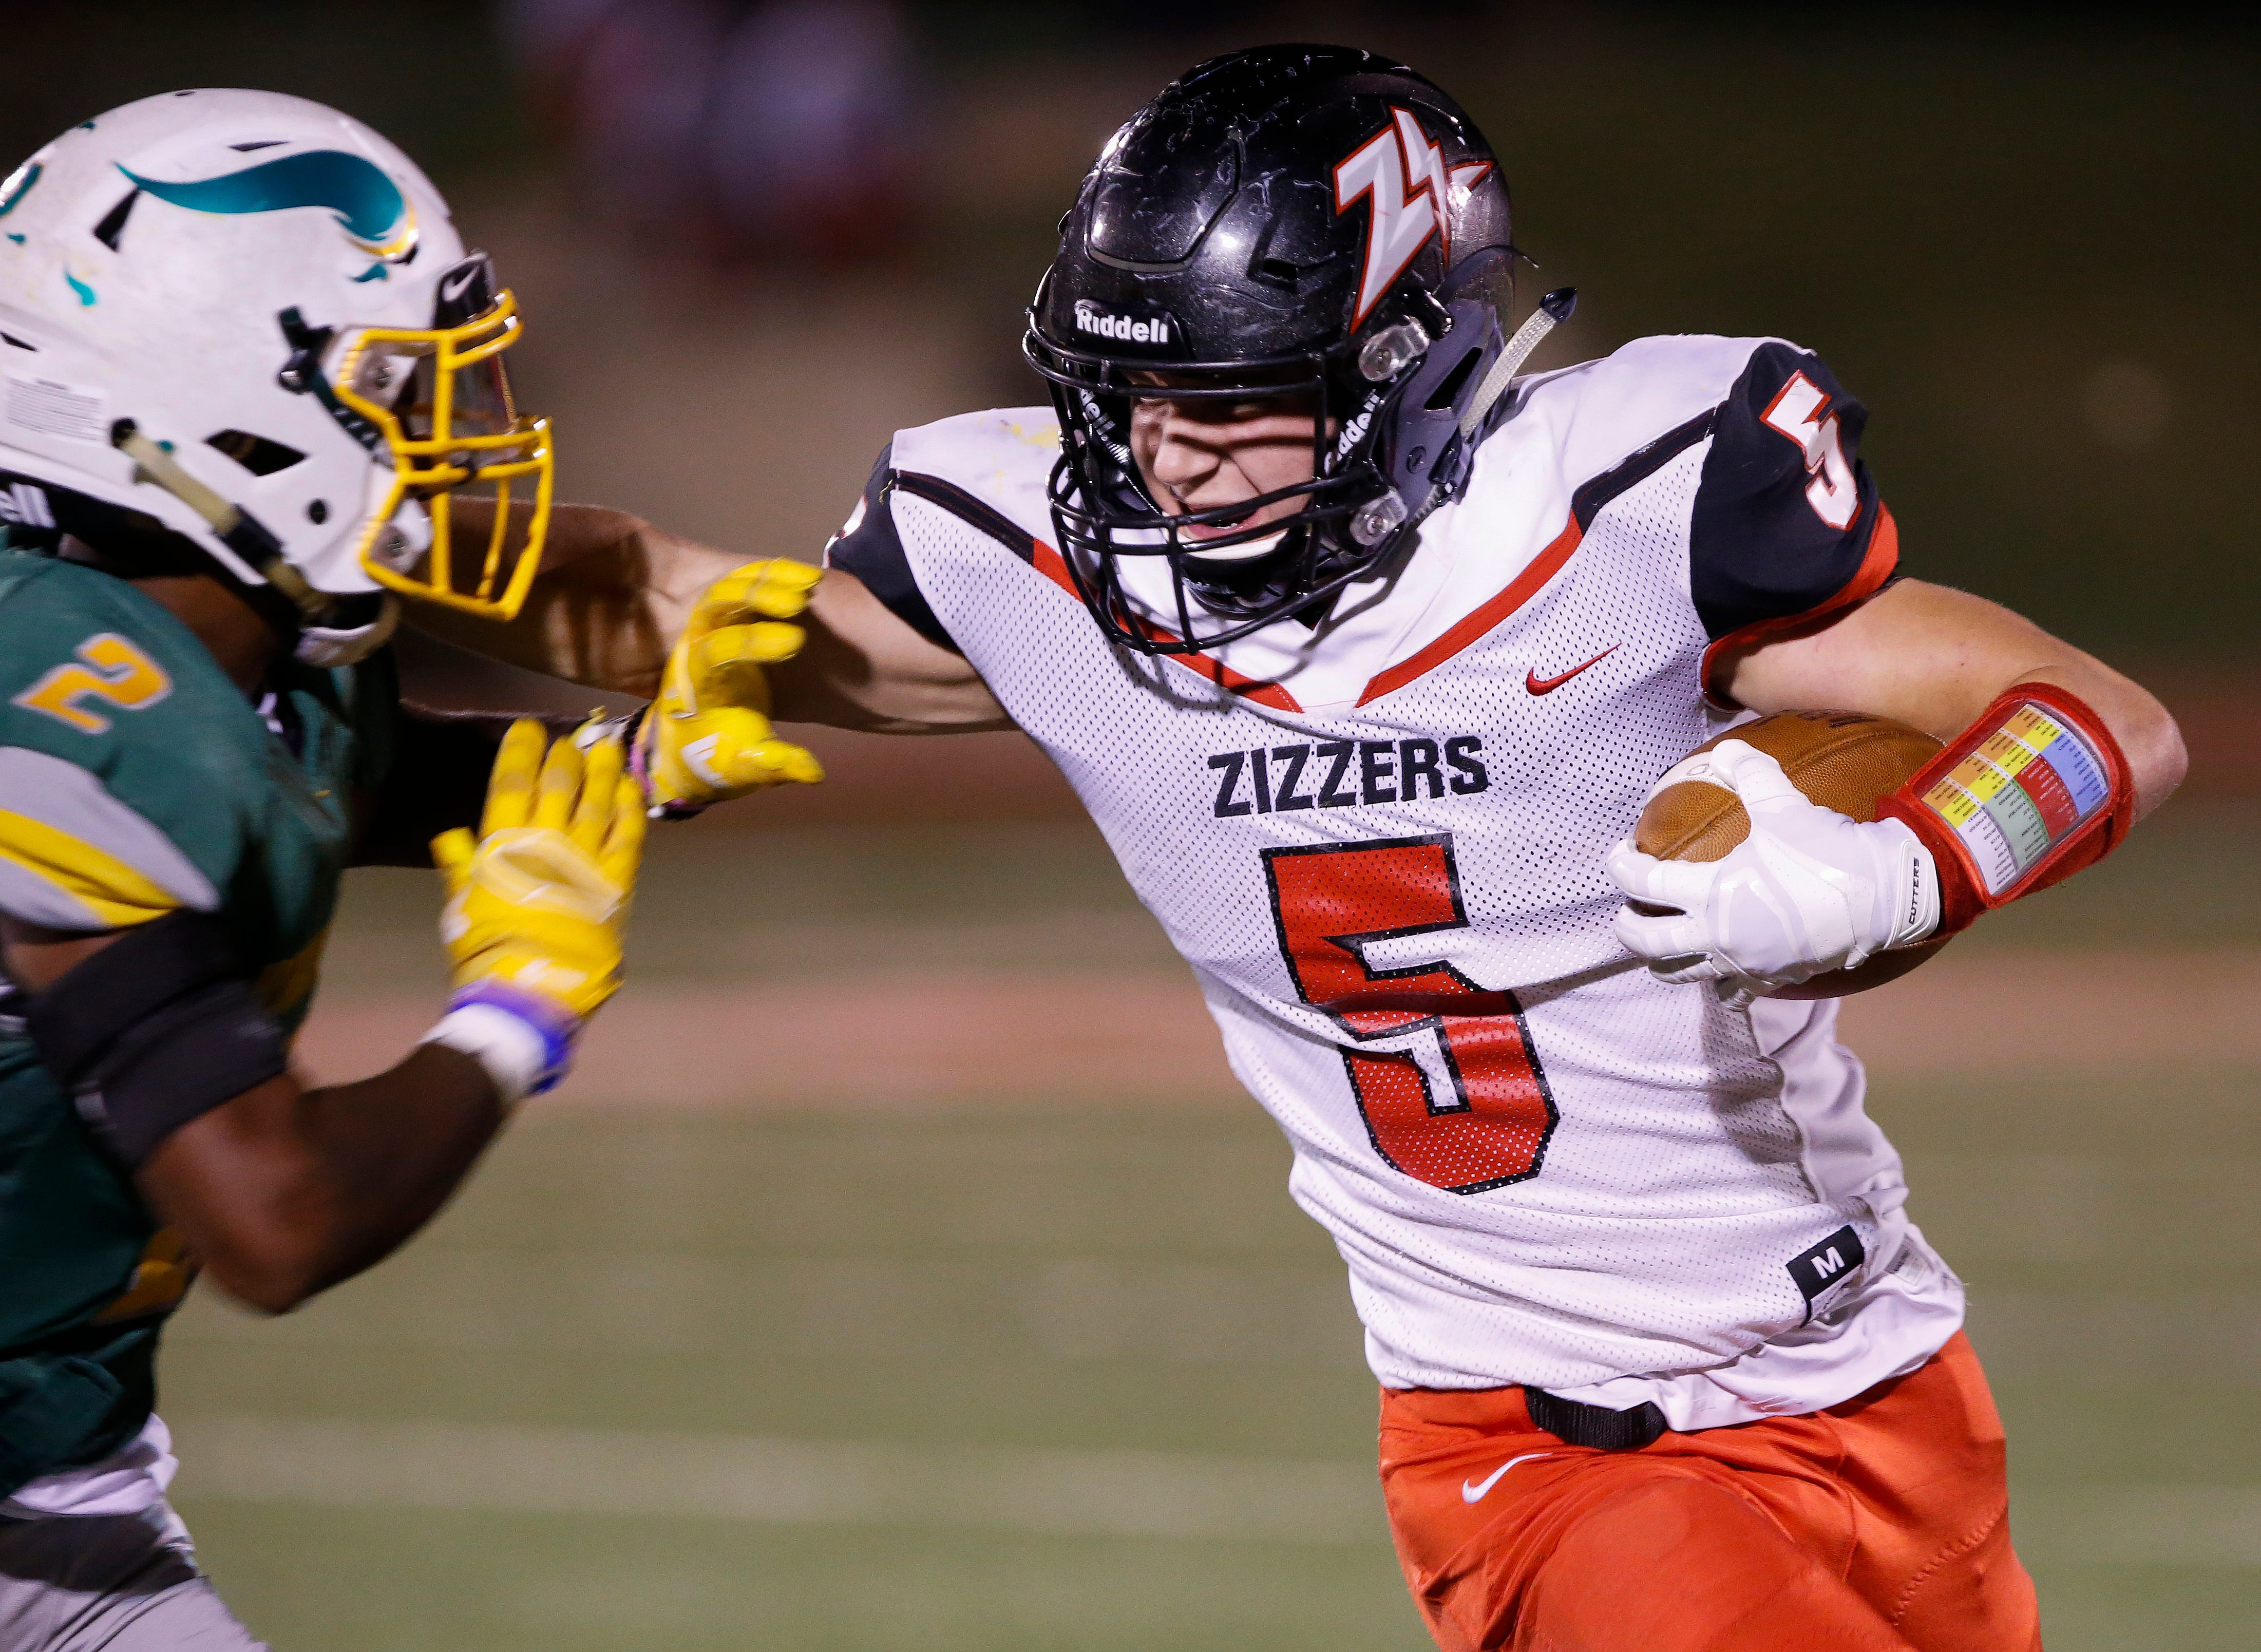 Scenes from the West Plains and Parkview football game at Parkview High School on Friday, Sep. 28, 2018.